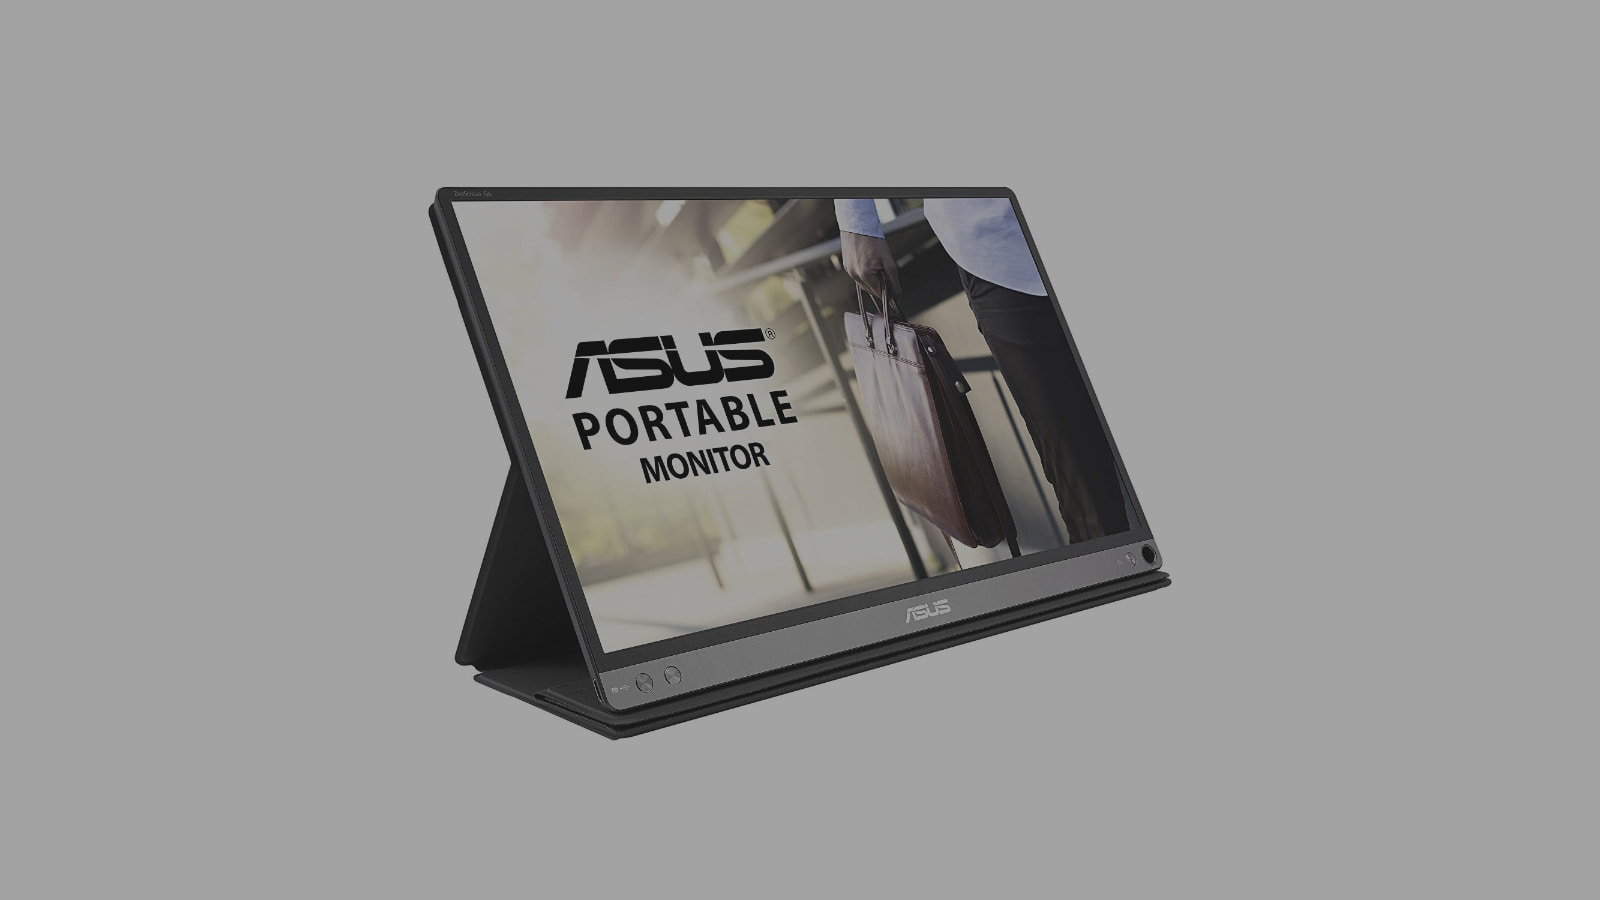 Deal Alert: Grab this battery-powered portable ASUS monitor and save $50